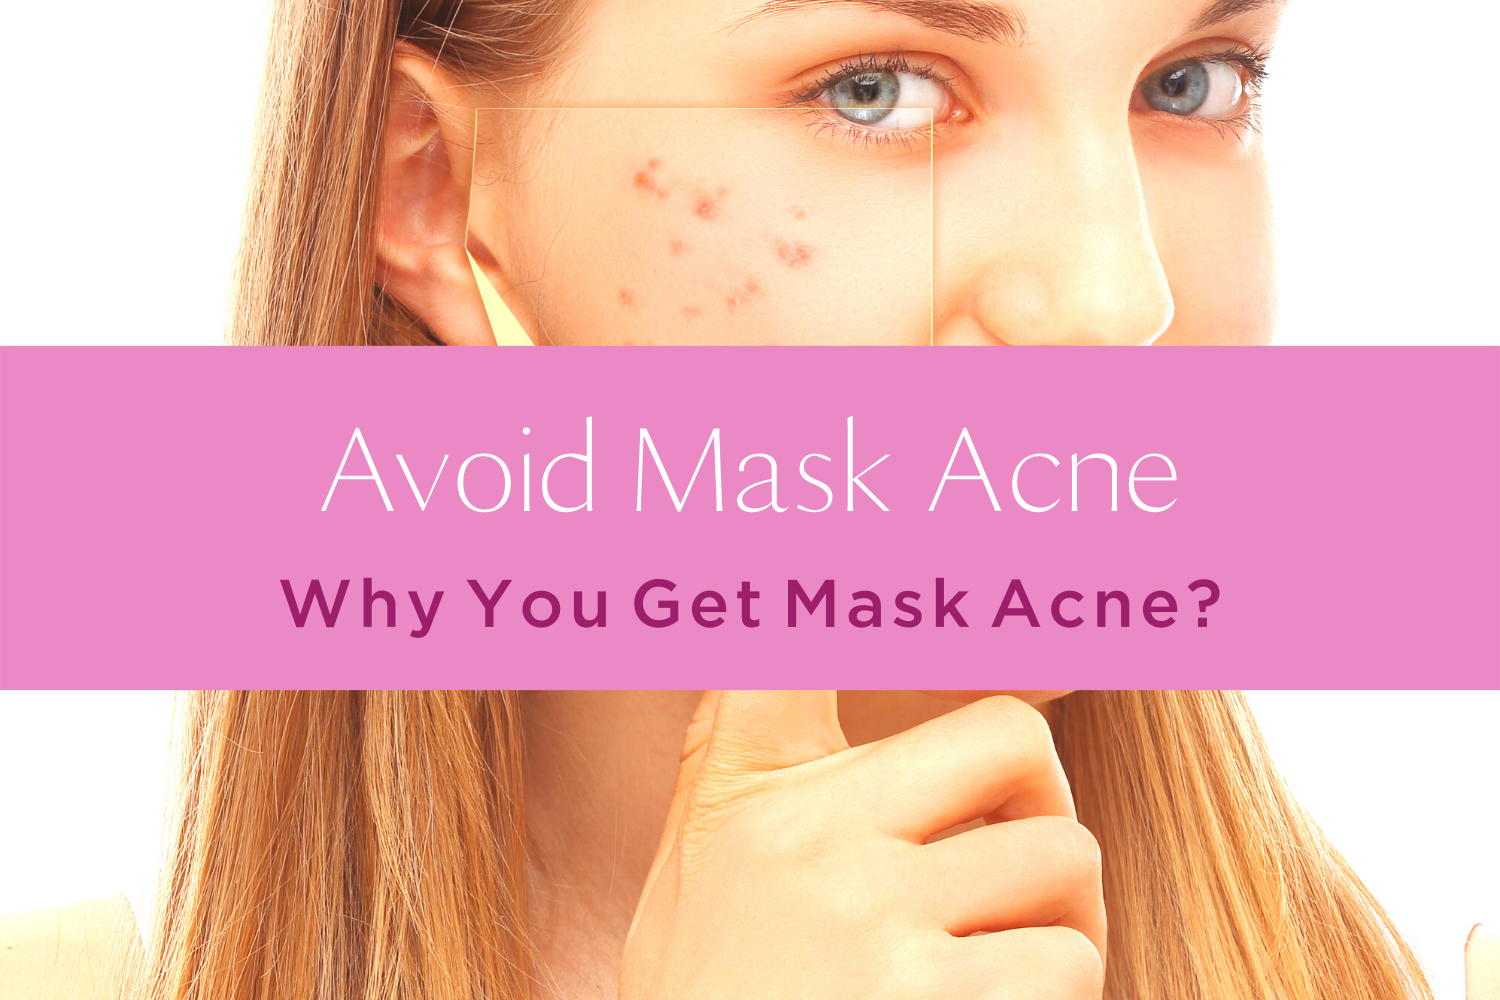 Avoid Mask Acne | 4 Reasons You Get Acne While Wearing A Mask